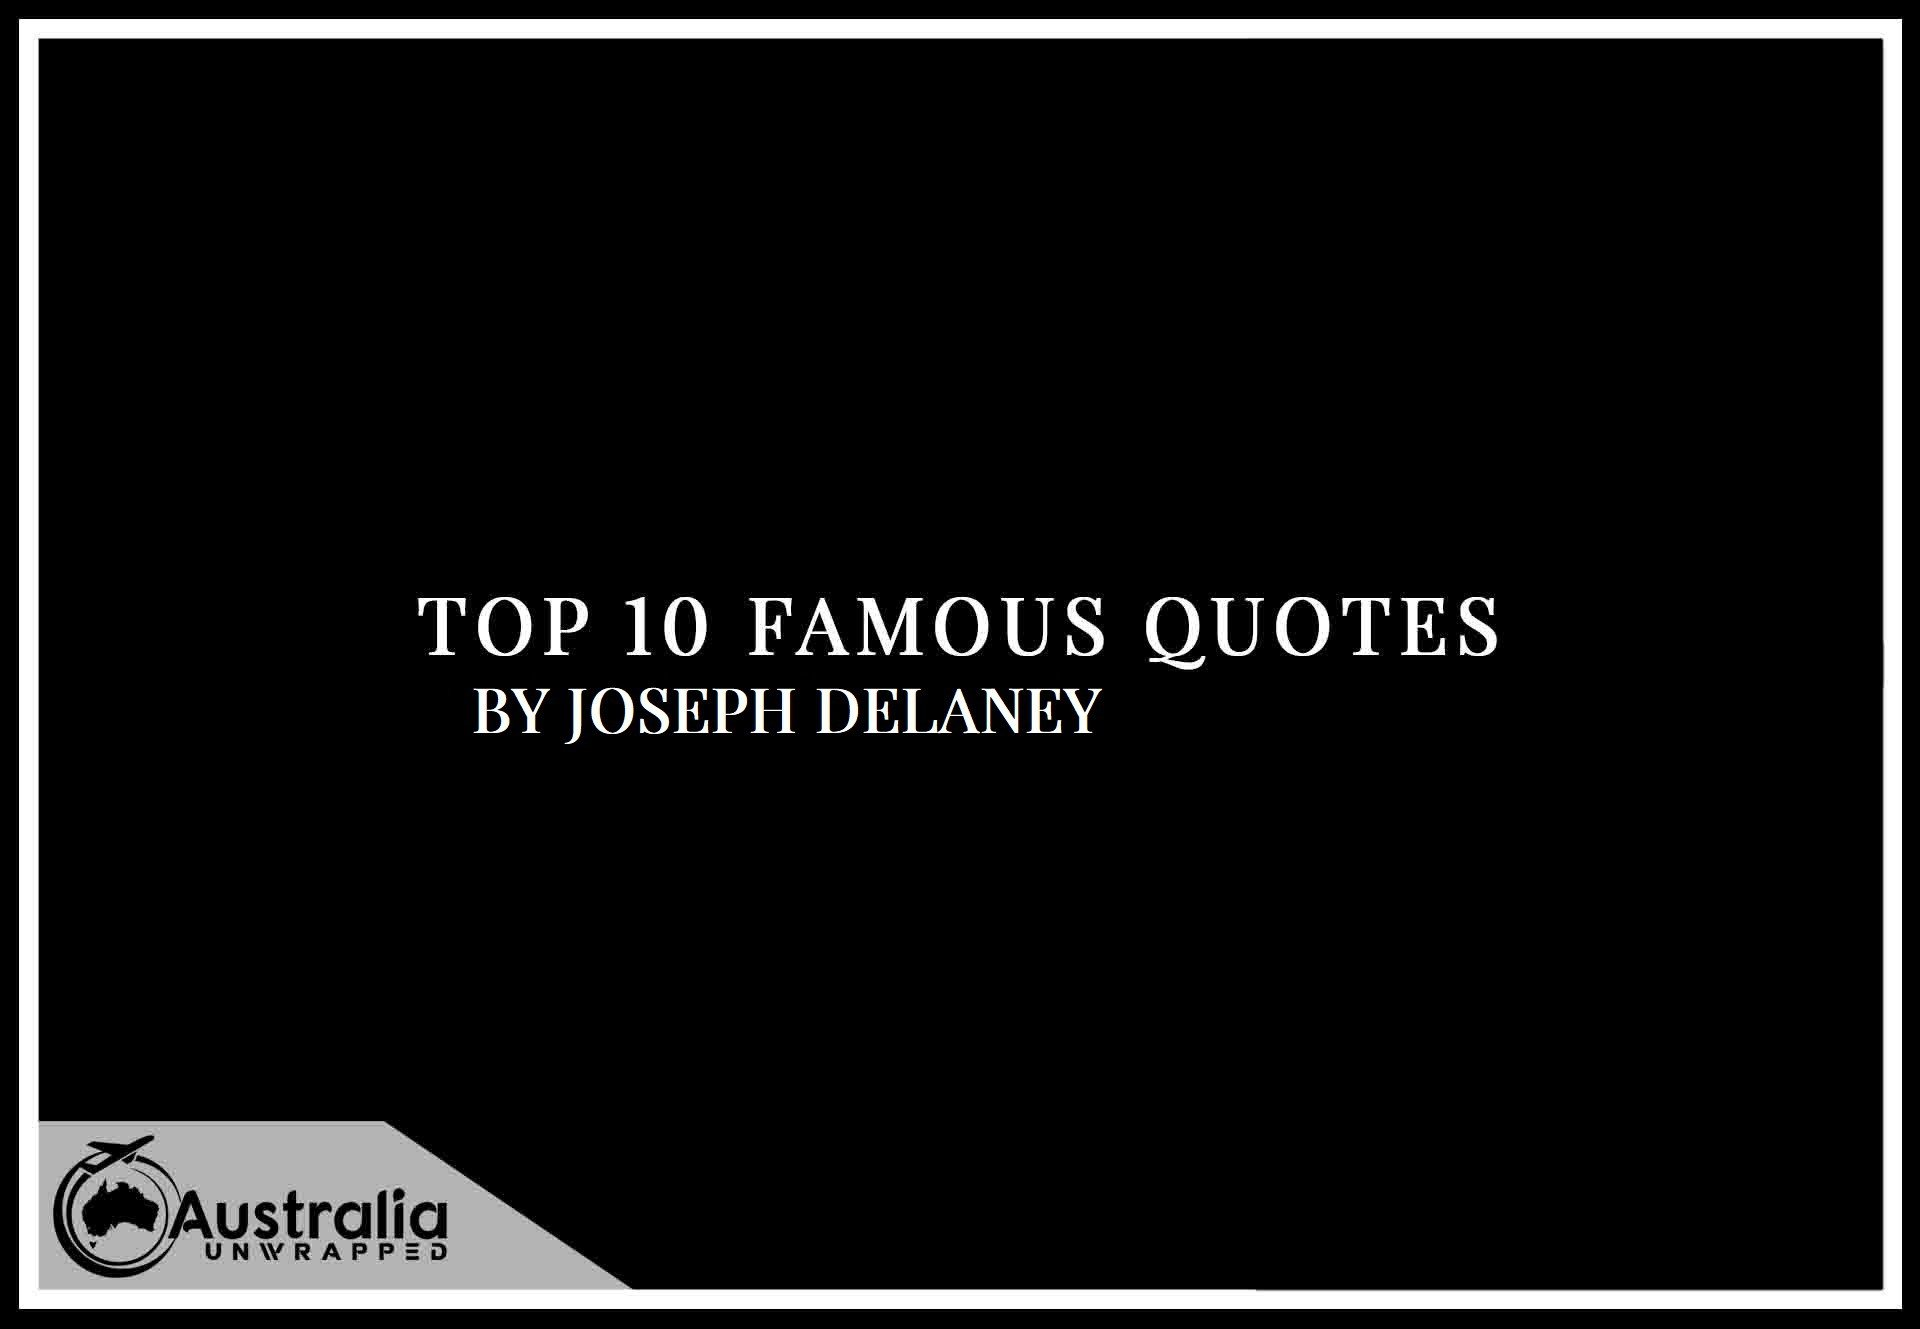 Top 10 Famous Quotes by Author Joseph Delaney